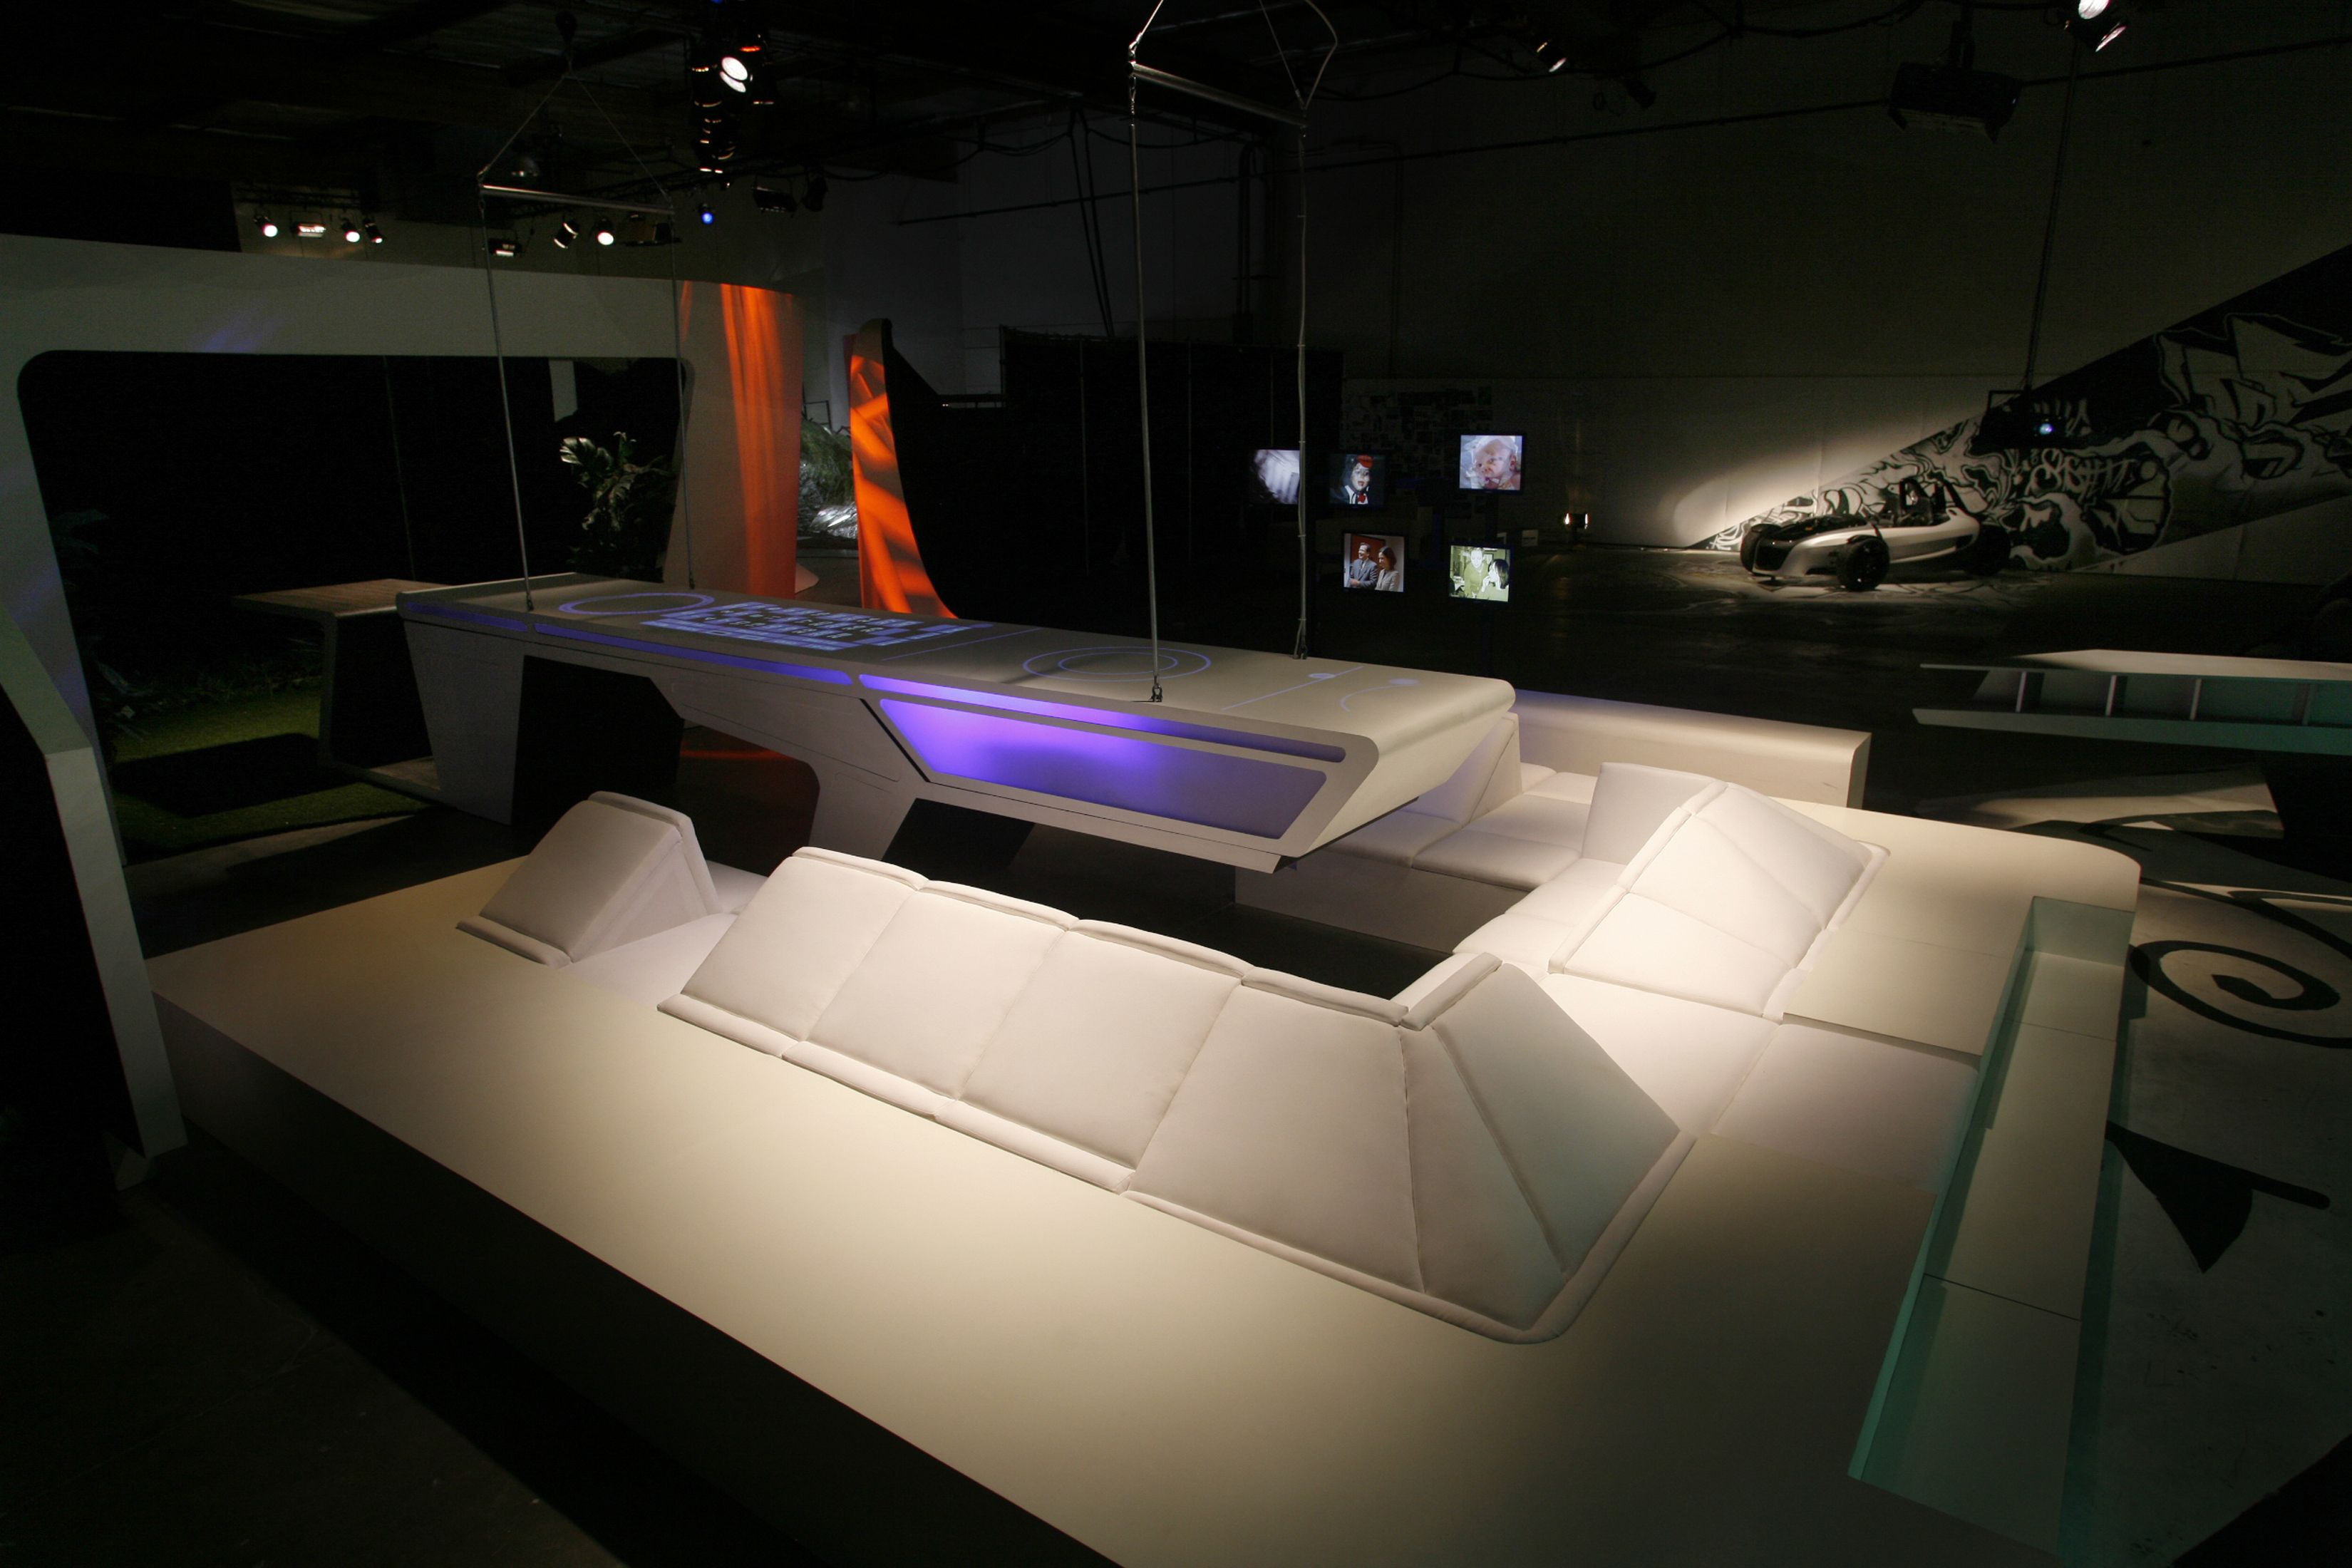 Moonraker, GRAFT: life set for one of four avatars to predict the future environment of the target group; a set for movable components of the interior digital interface turns into a kitchen counter